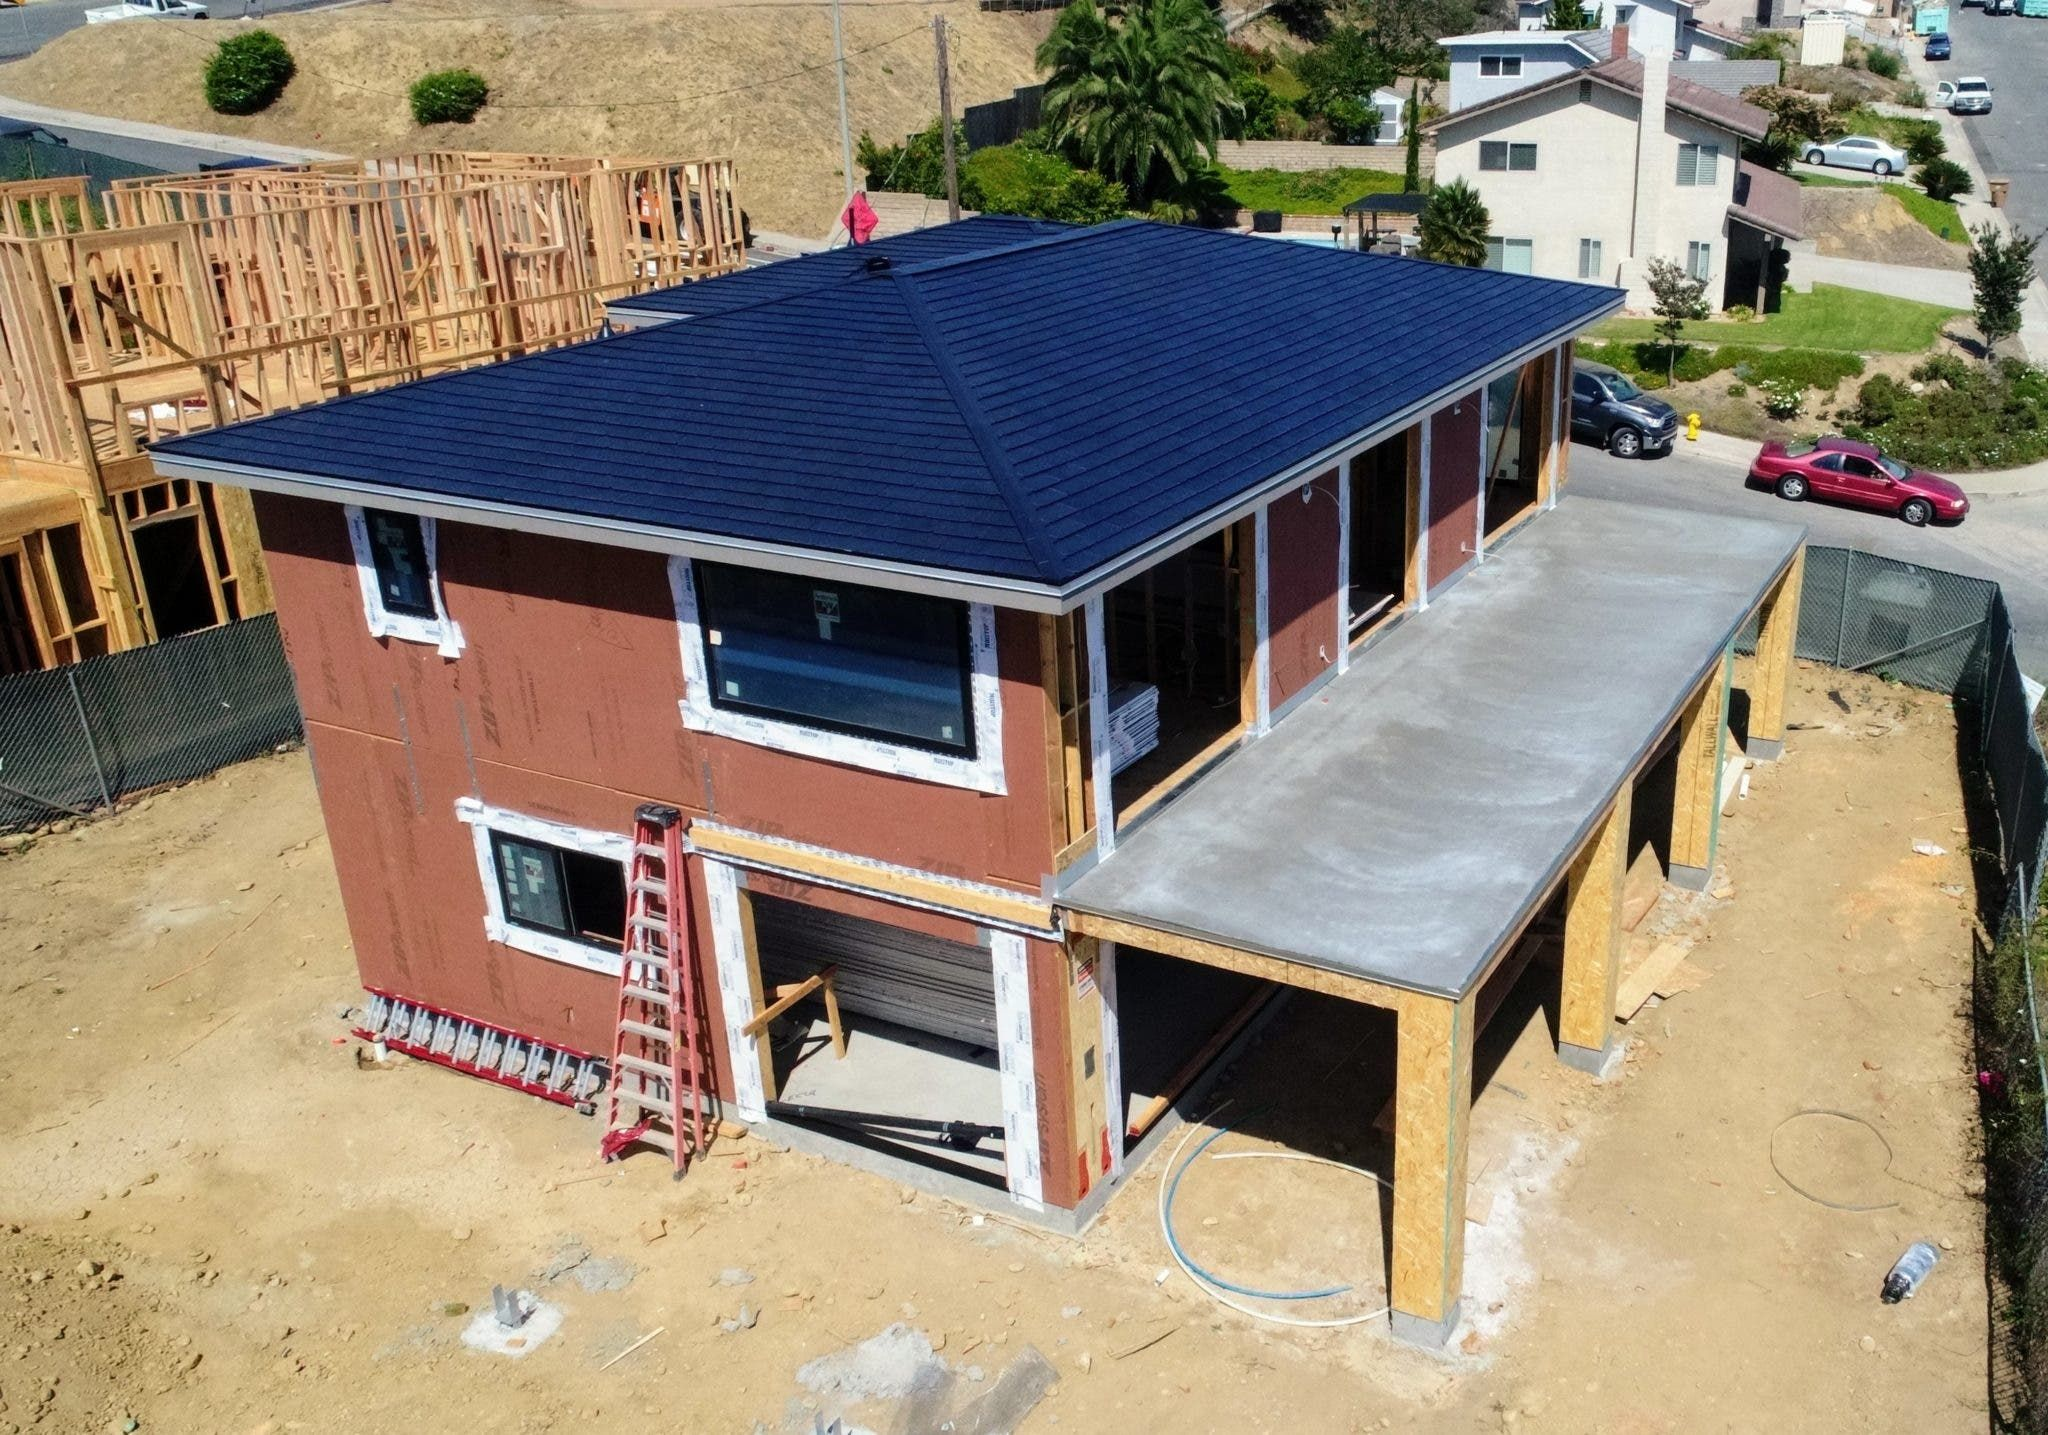 Tesla Installed The Solarglass Roof On Our New Home Cleantechnica Exclusive In 2020 Tesla Solar Roof Solar Roof New Homes